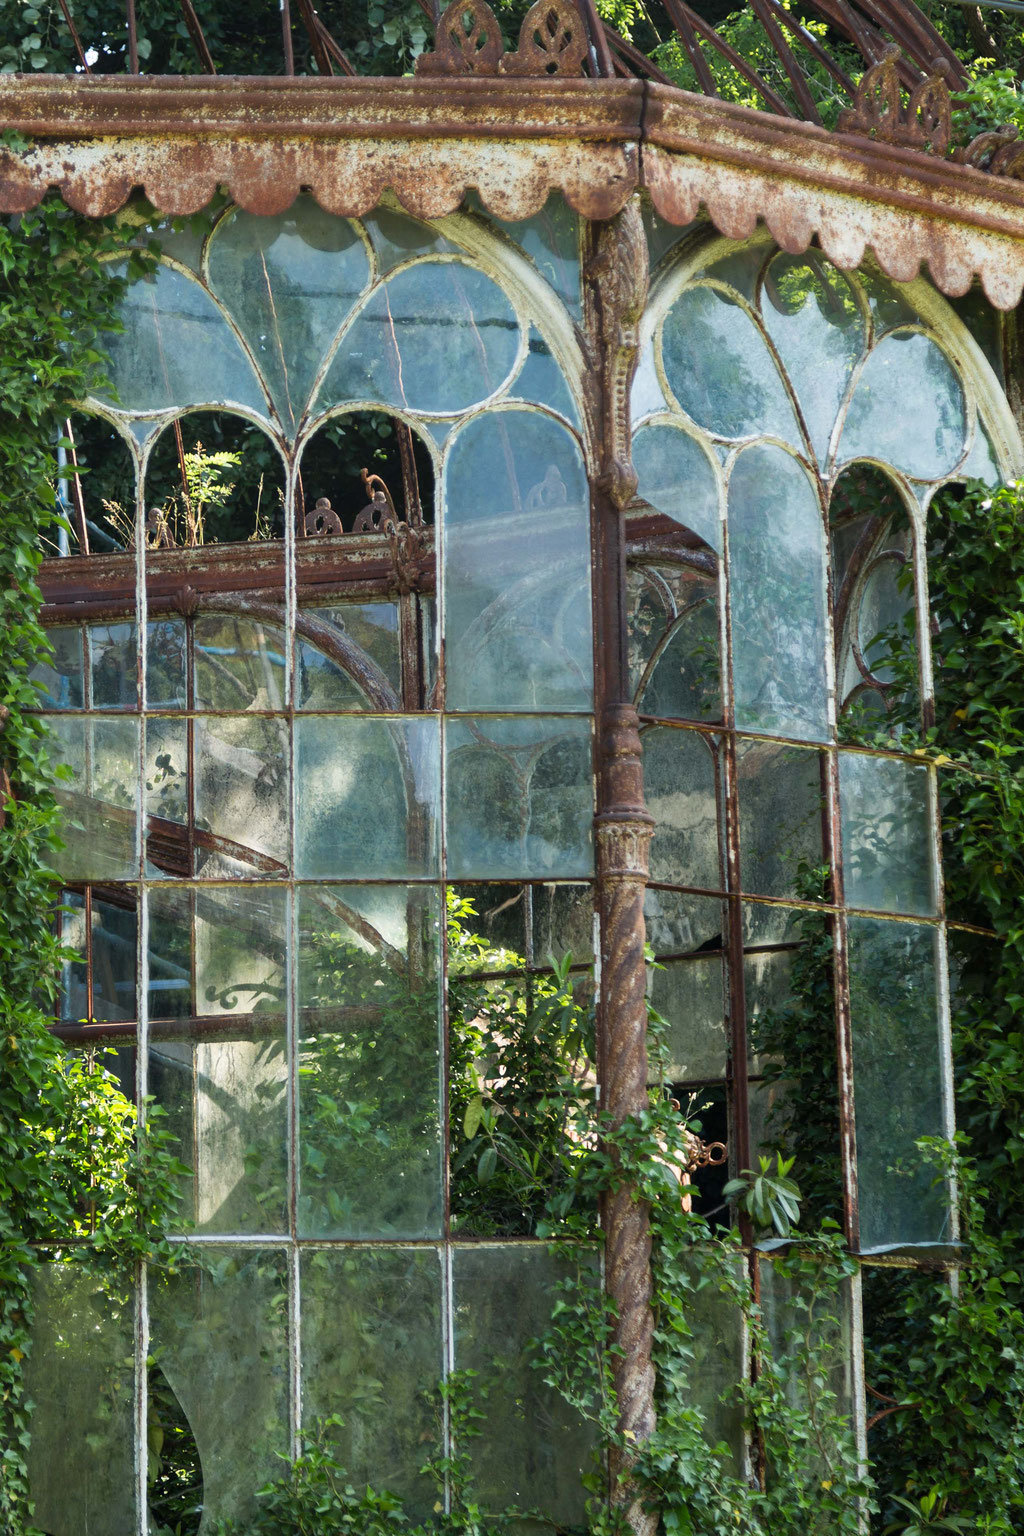 Greenhouse, June 2017, Belgium